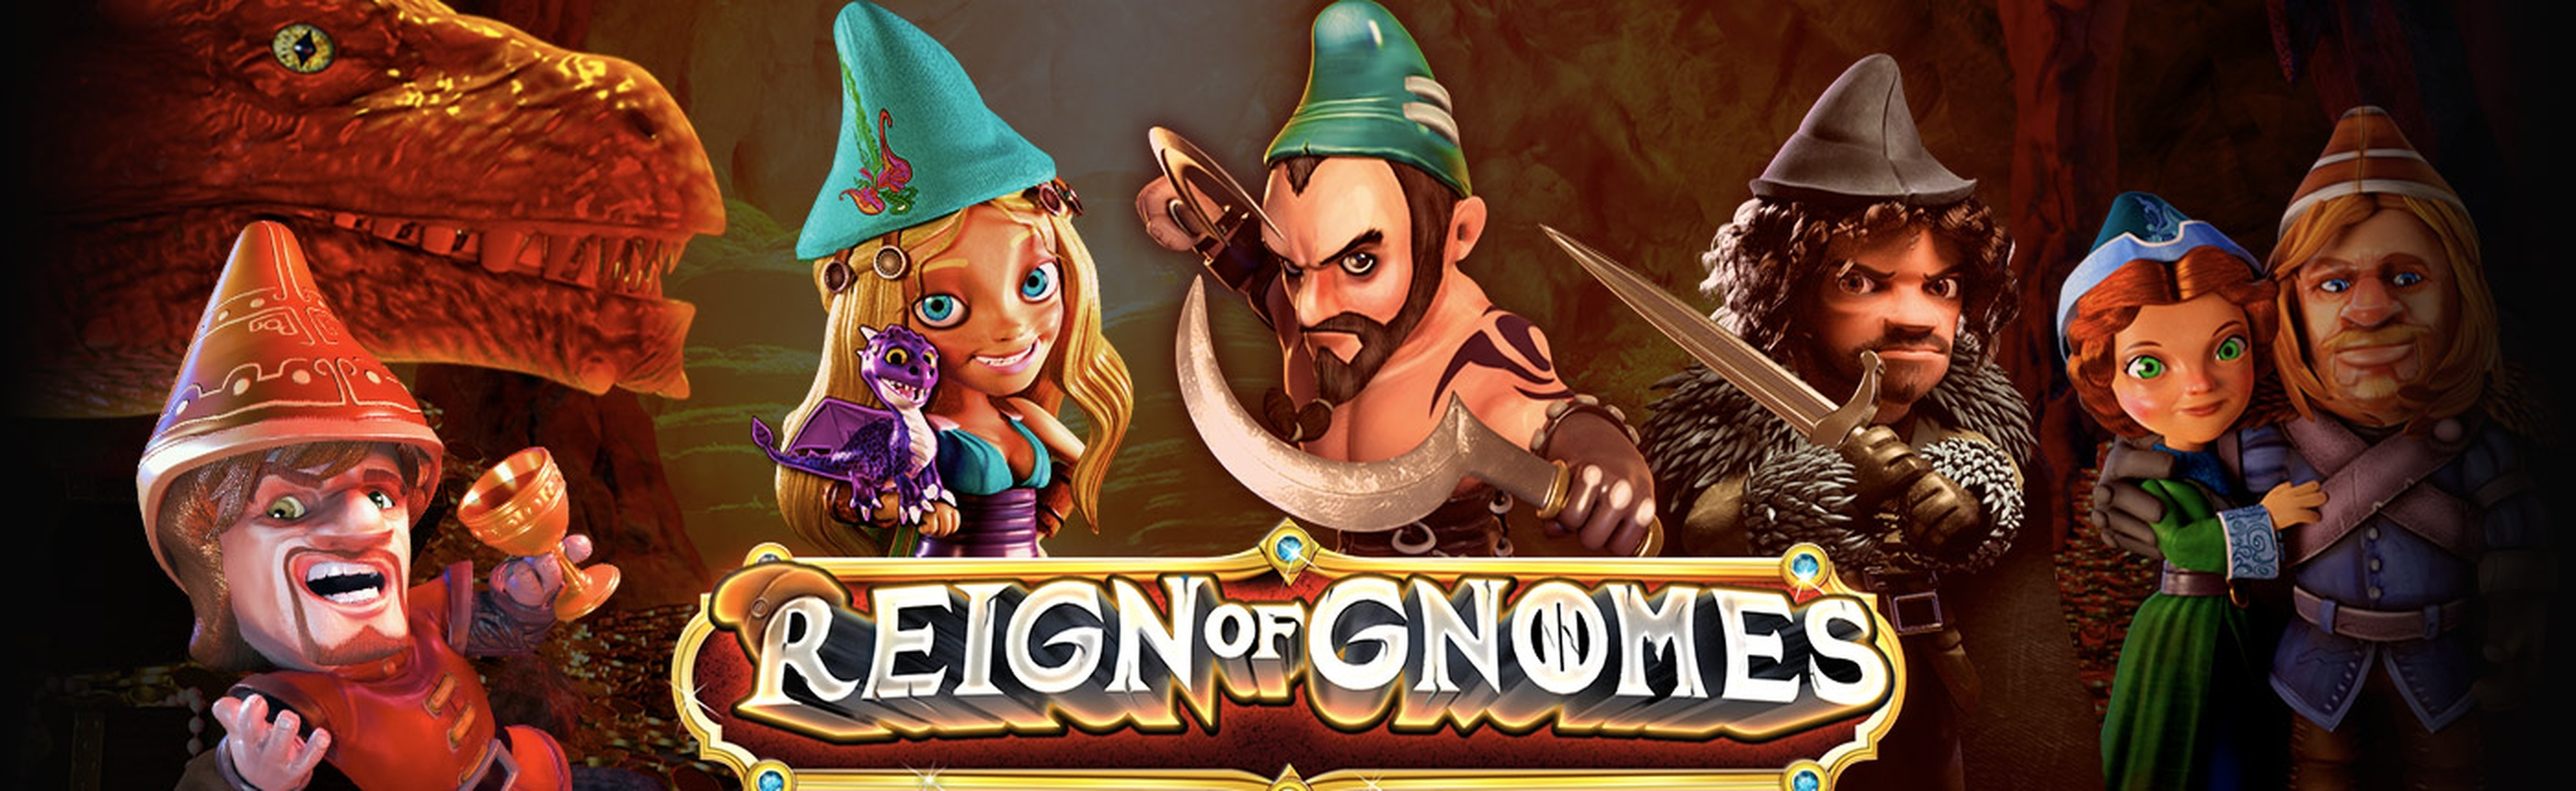 The Reign of Gnomes Online Slot Demo Game by Revolver Gaming